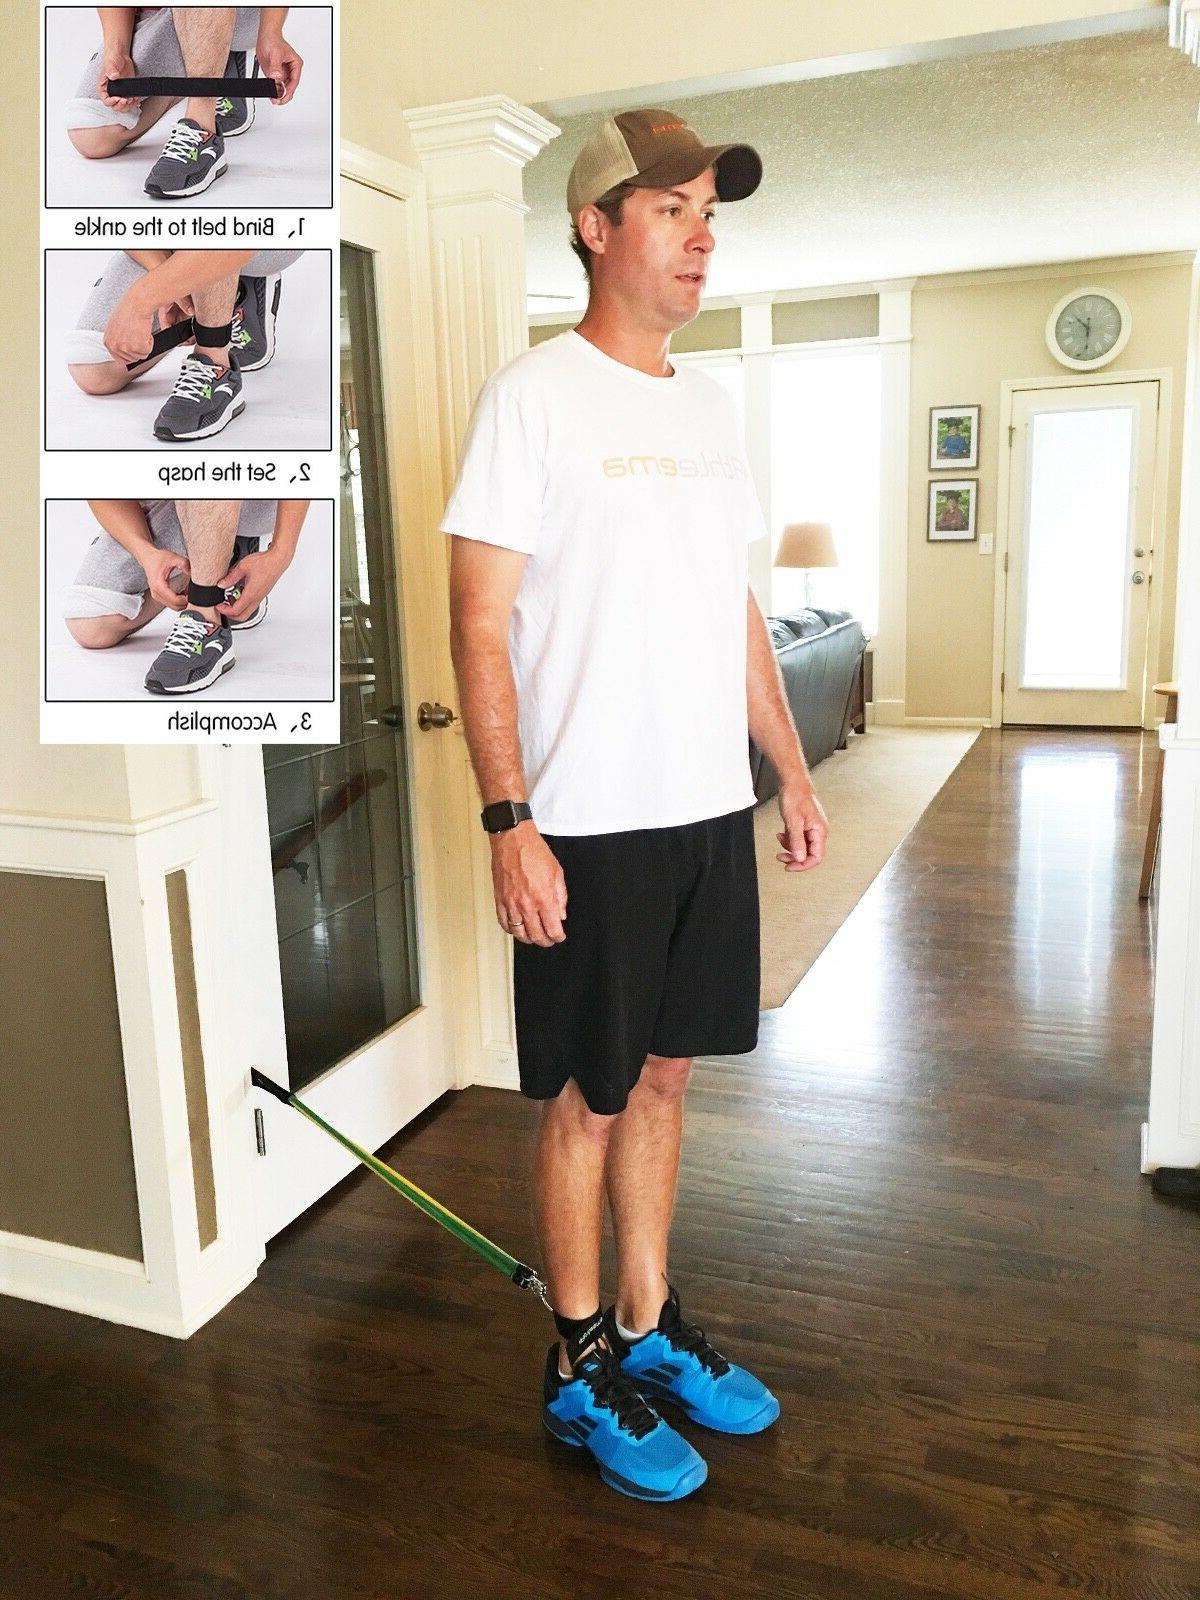 Athleema pc Tube Resistance with Door Ankle Soft-Gri